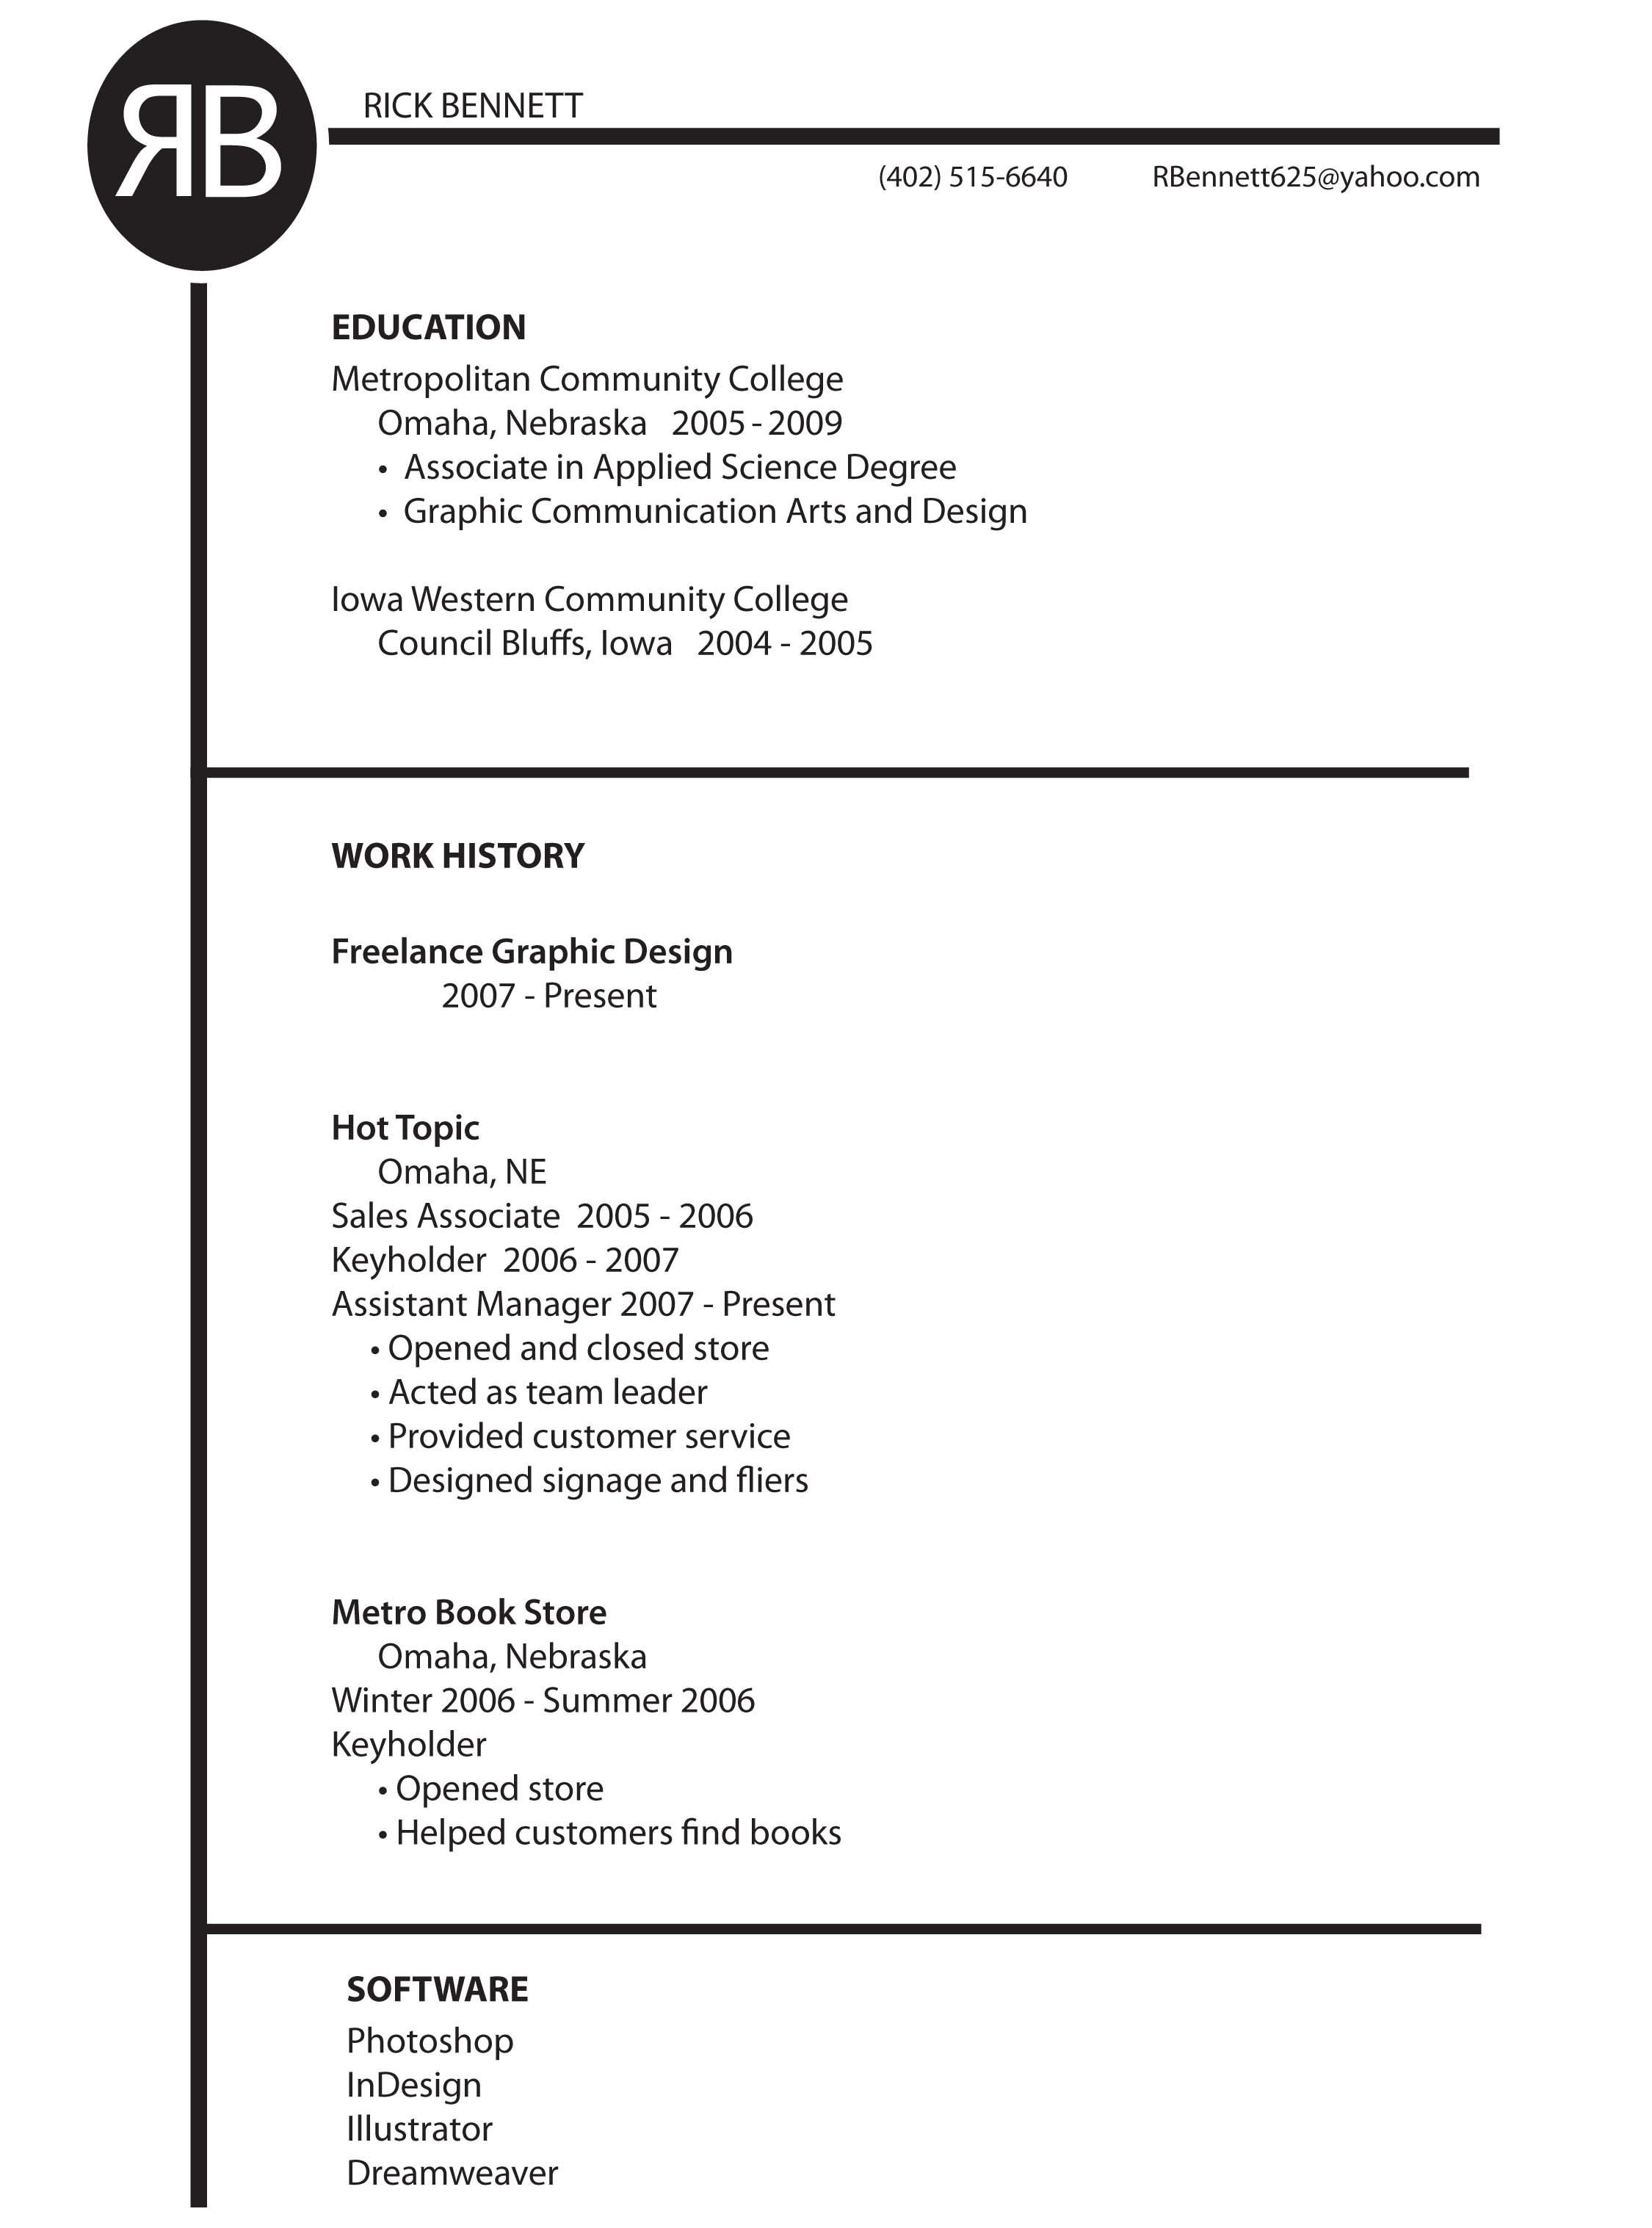 Resume Design Example  I Heart Resume Design